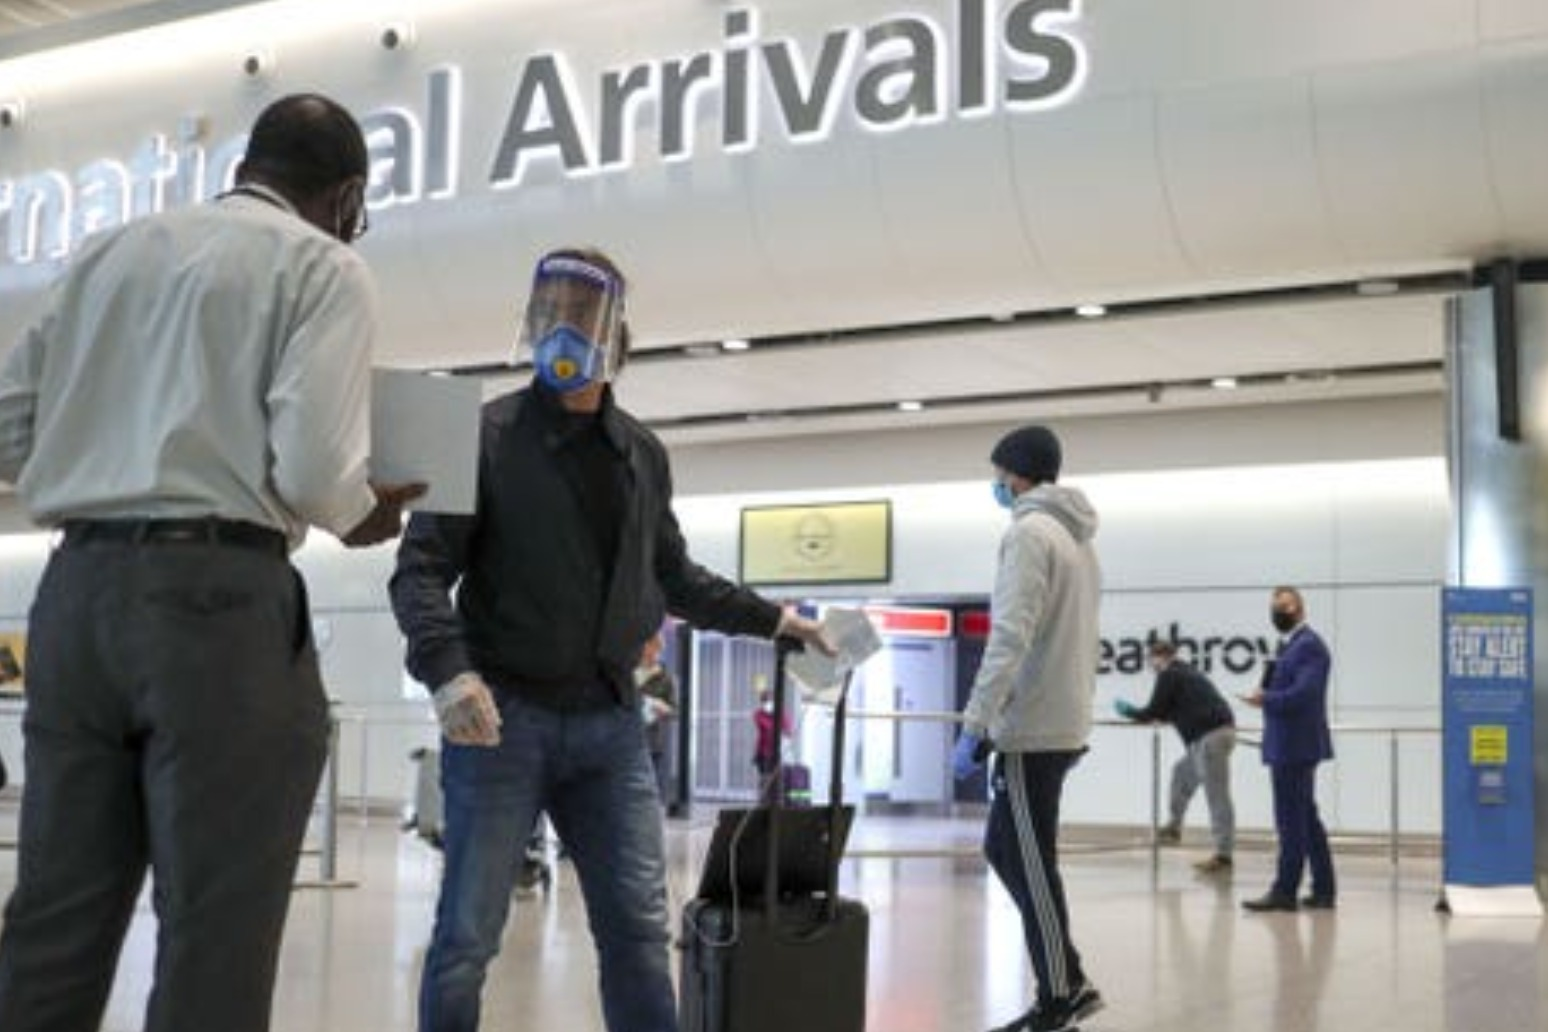 Threat of 10-year sentence for arrivals hiding high-risk travel criticised